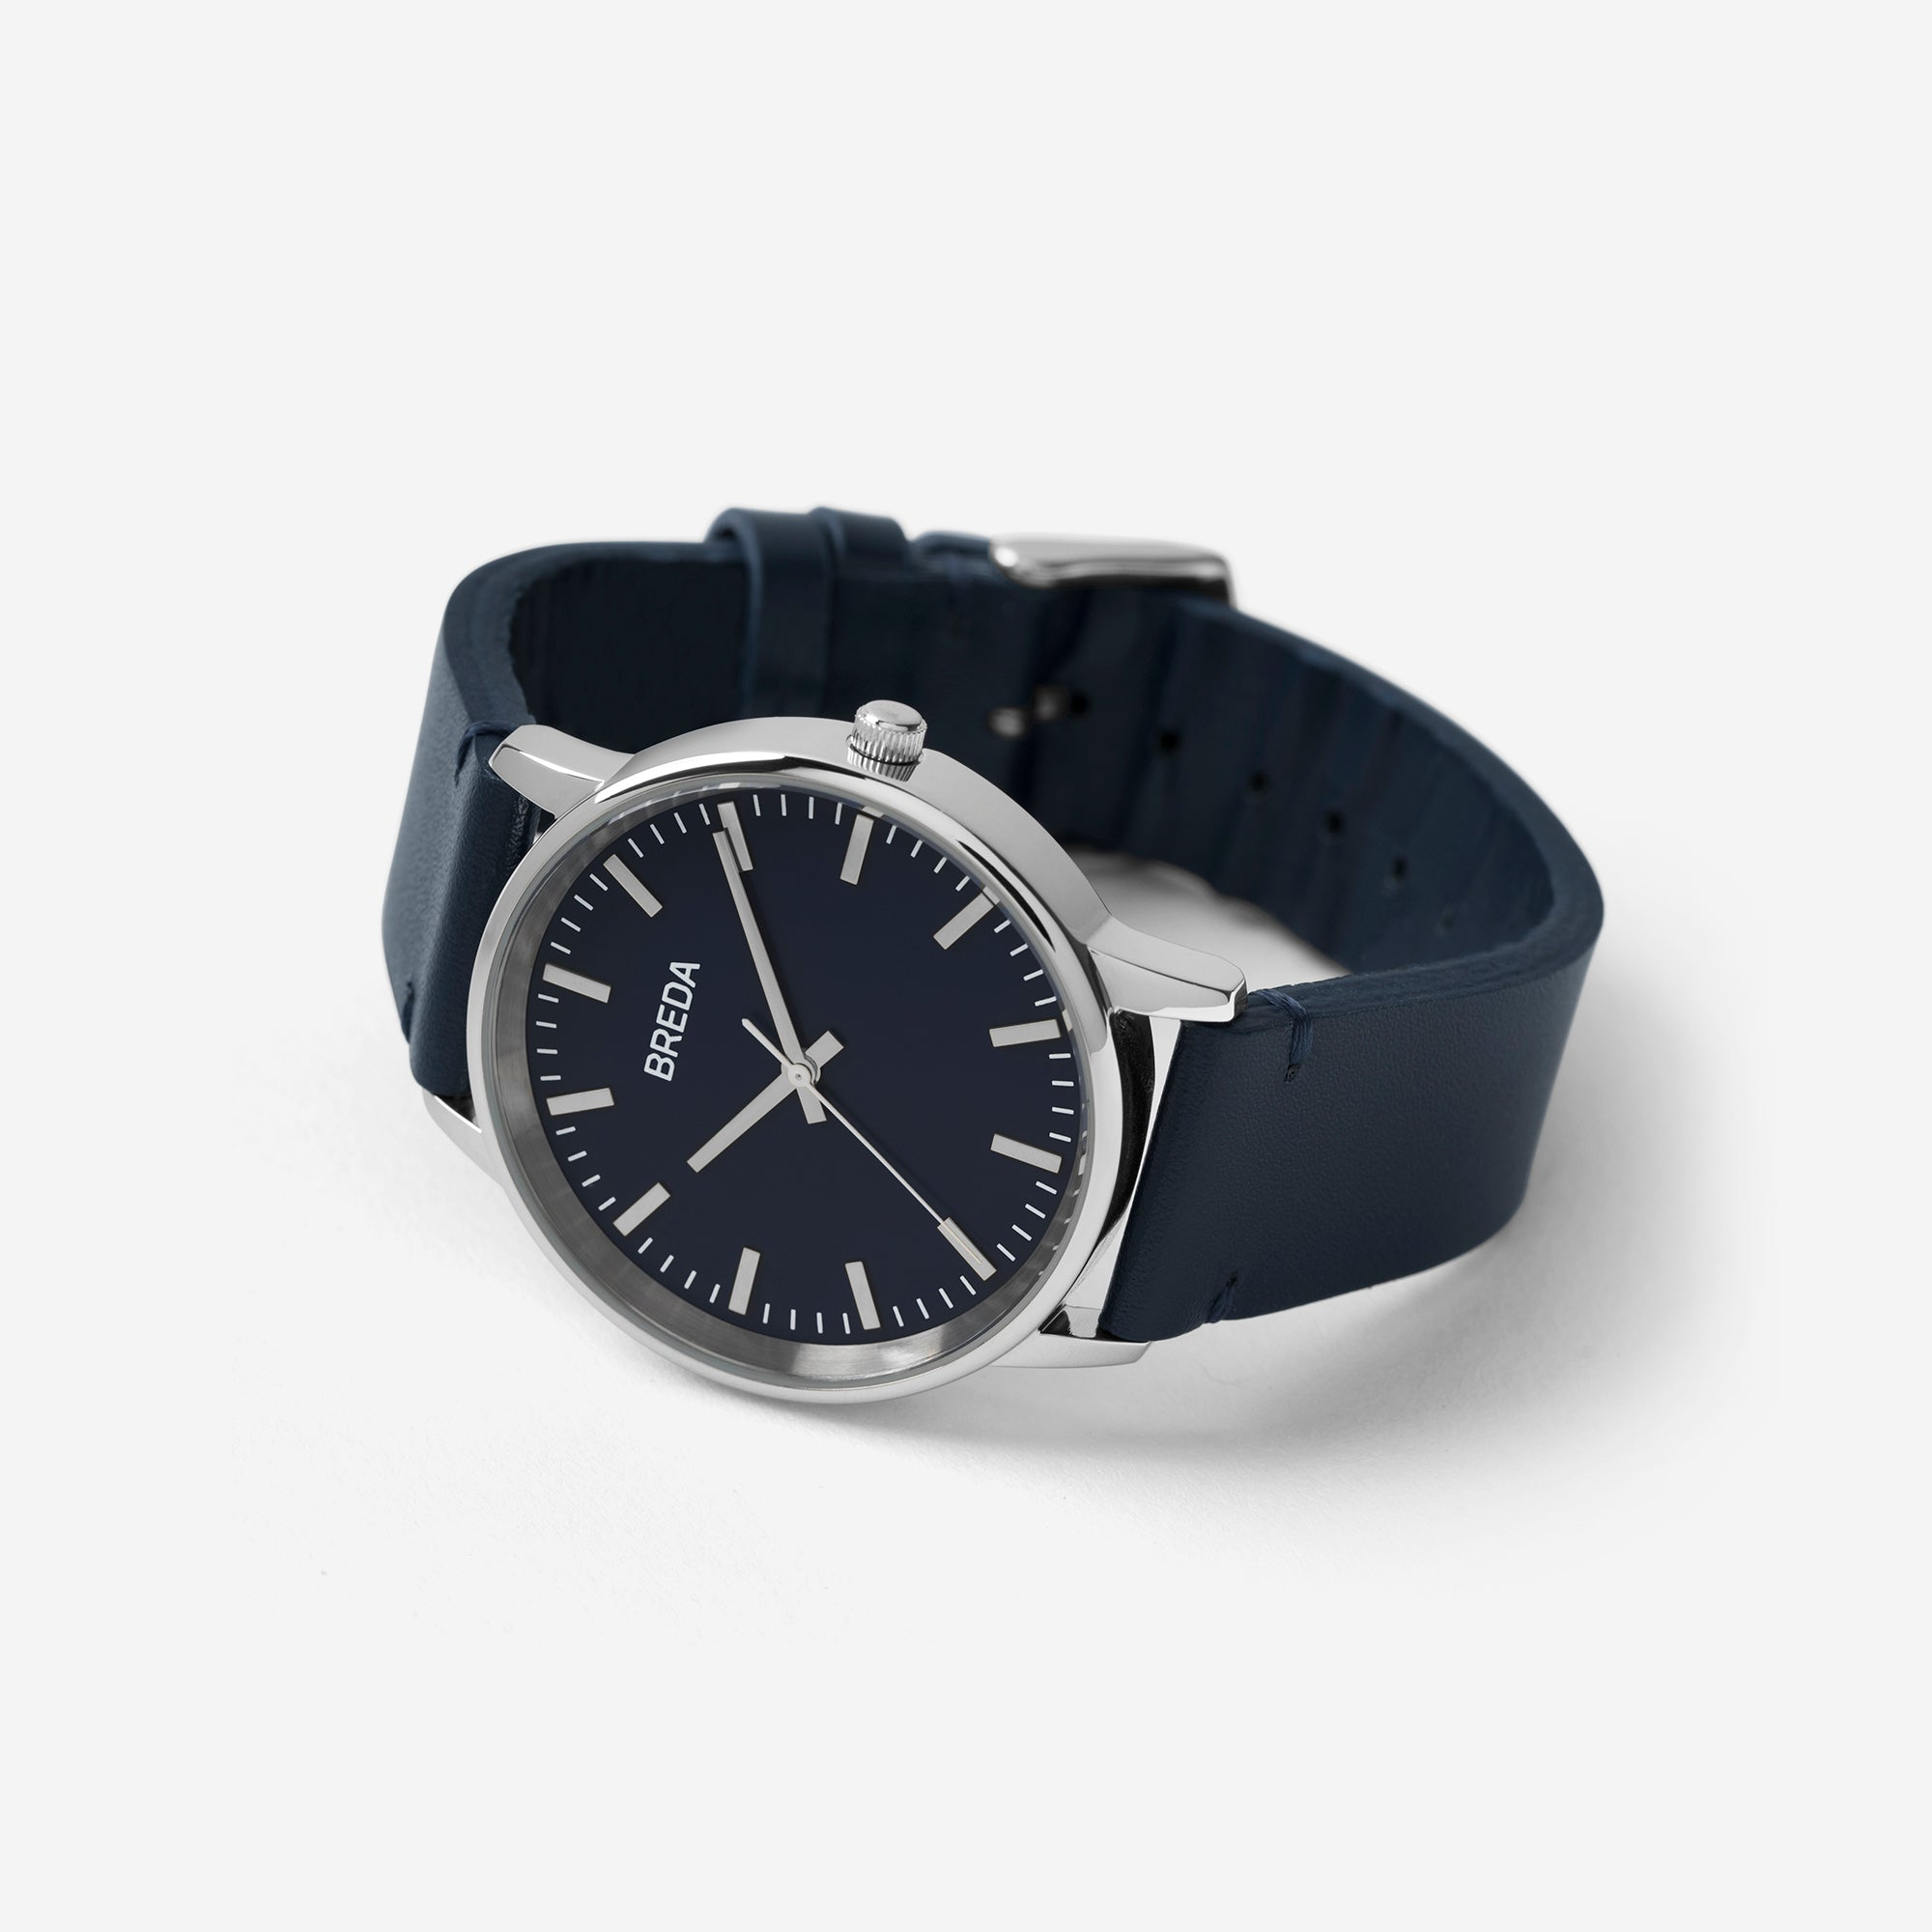 //cdn.shopify.com/s/files/1/0879/6650/products/breda-zapf-1697m-silver-navy-leather-watch-angle_751ca5c5-e619-4d28-9439-7ecc1190fdd7_1024x1024.jpg?v=1543248415